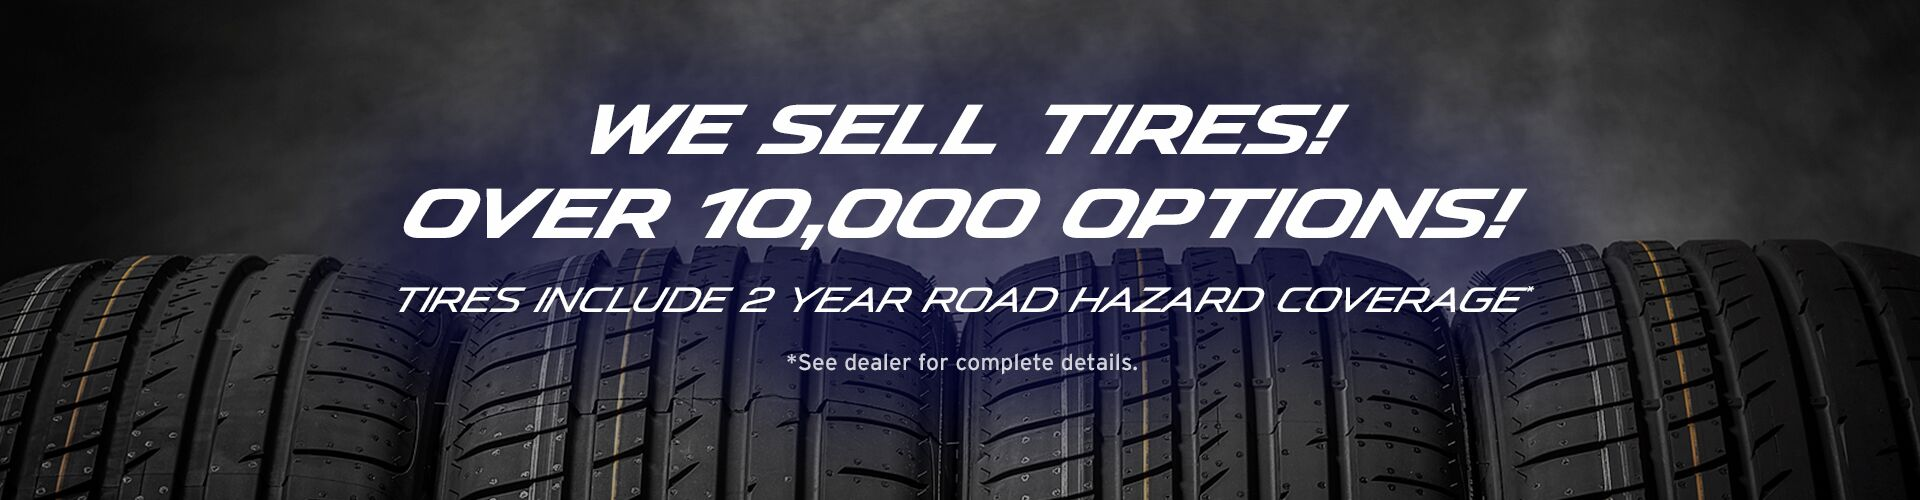 We Sell Tire!